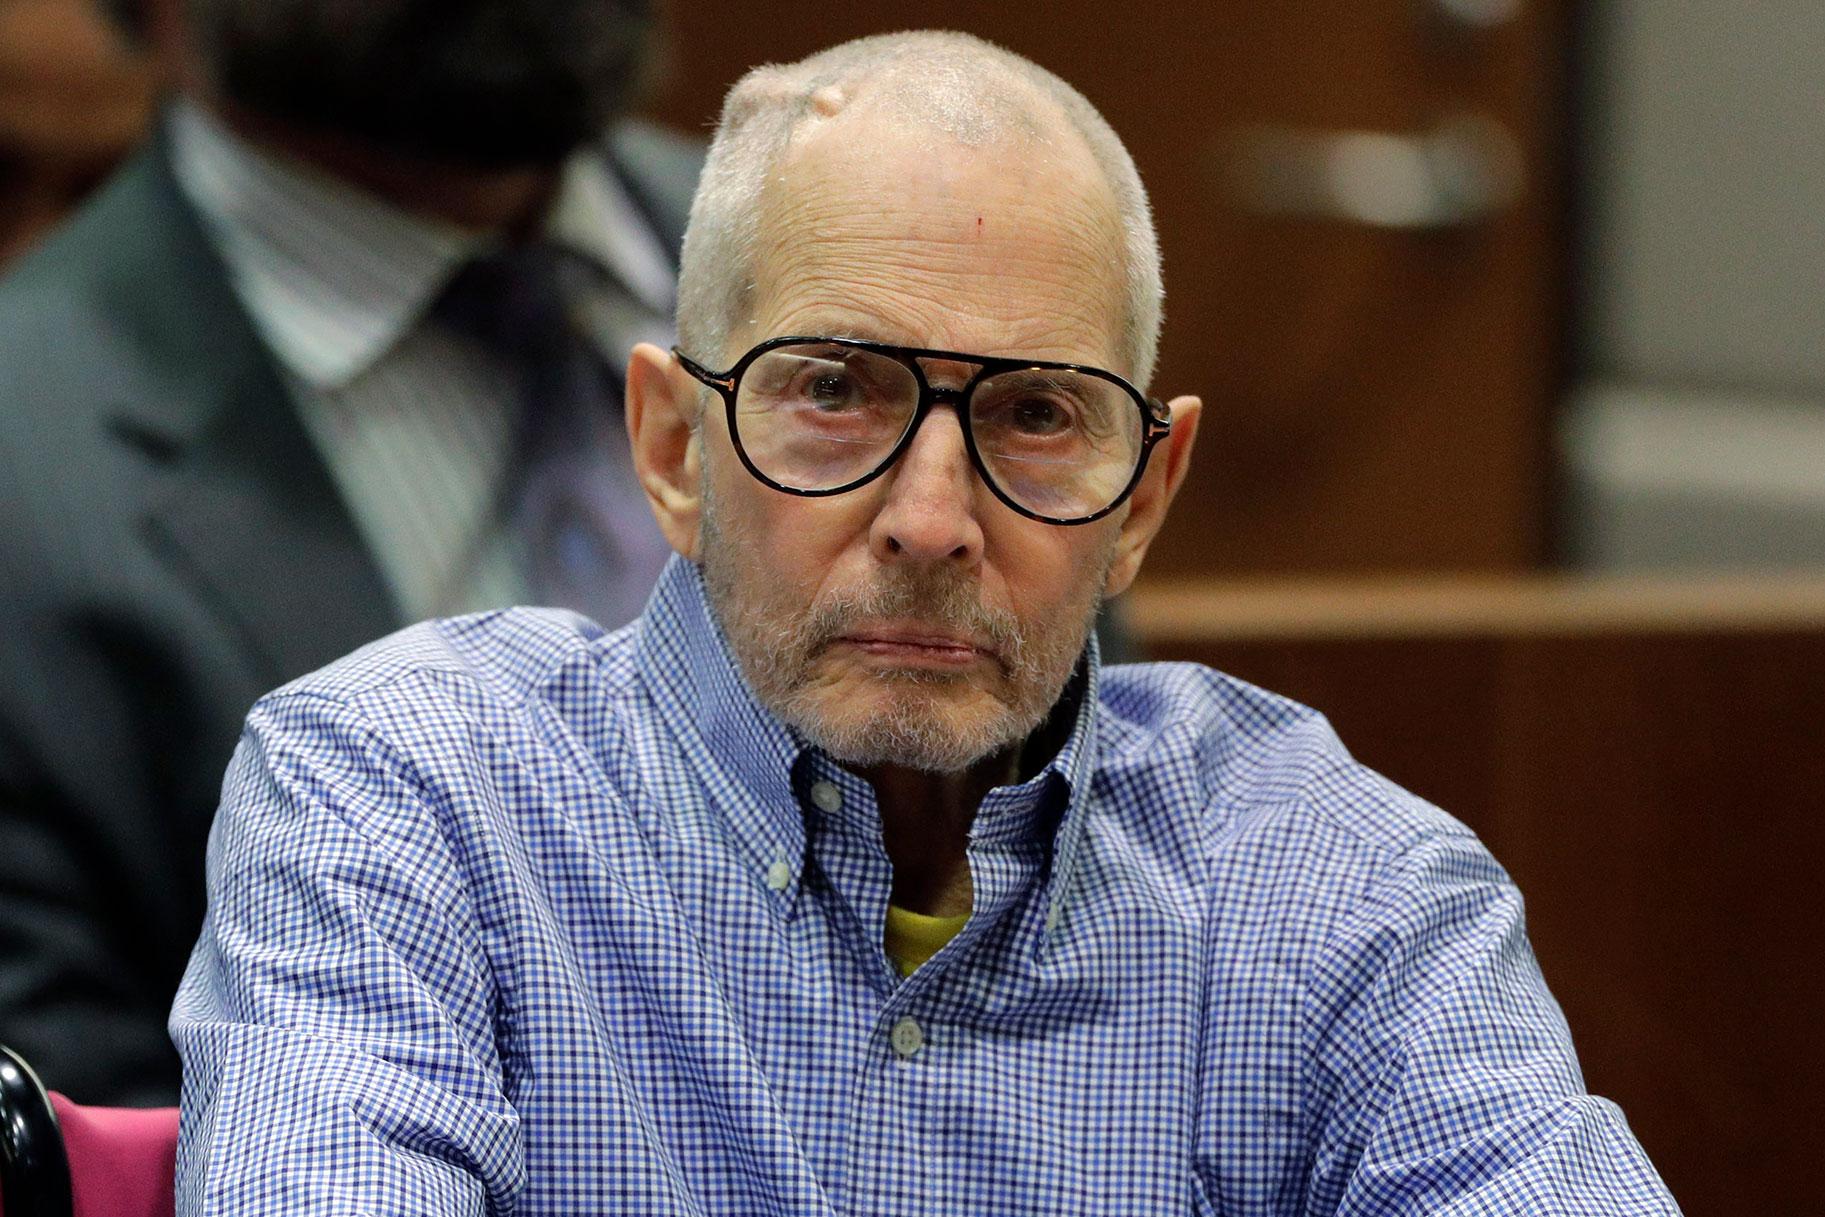 Robert Durst, asesino acusado destacado en 'The Jinx', superado en otra batalla legal